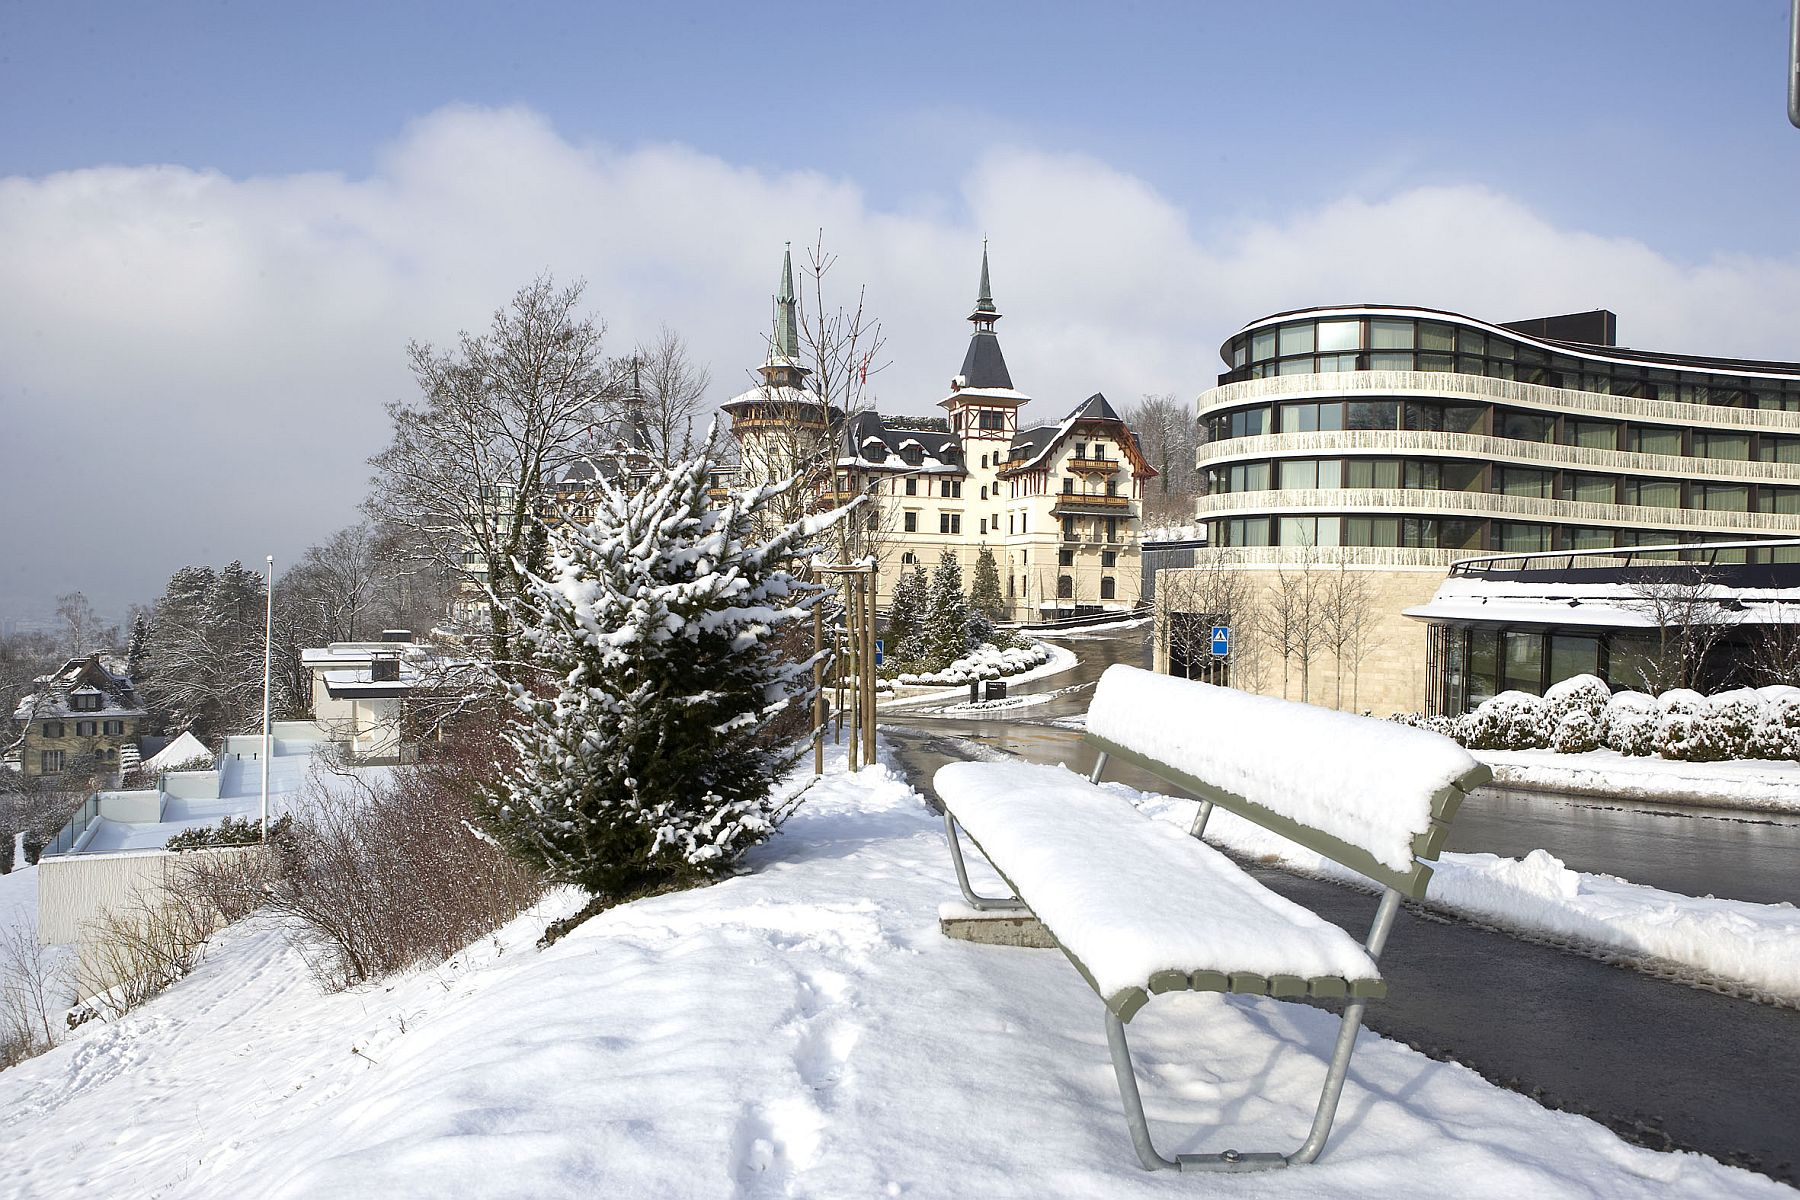 Winter brings its own unique charm at this lavish Swiss hotel and spa in Zurich